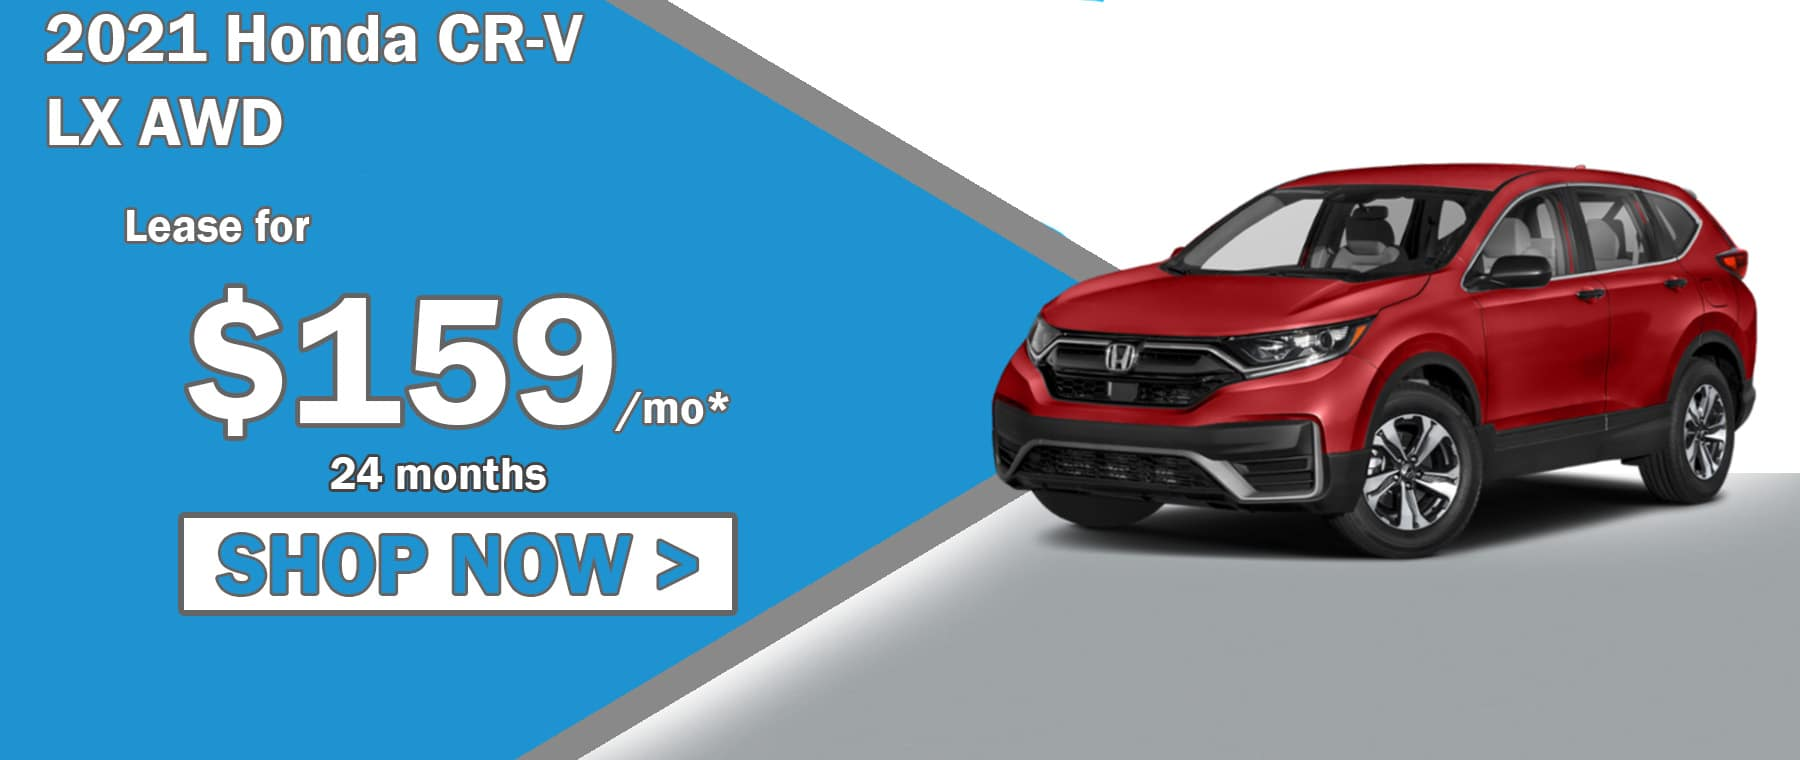 March 2021 CRV Lease final